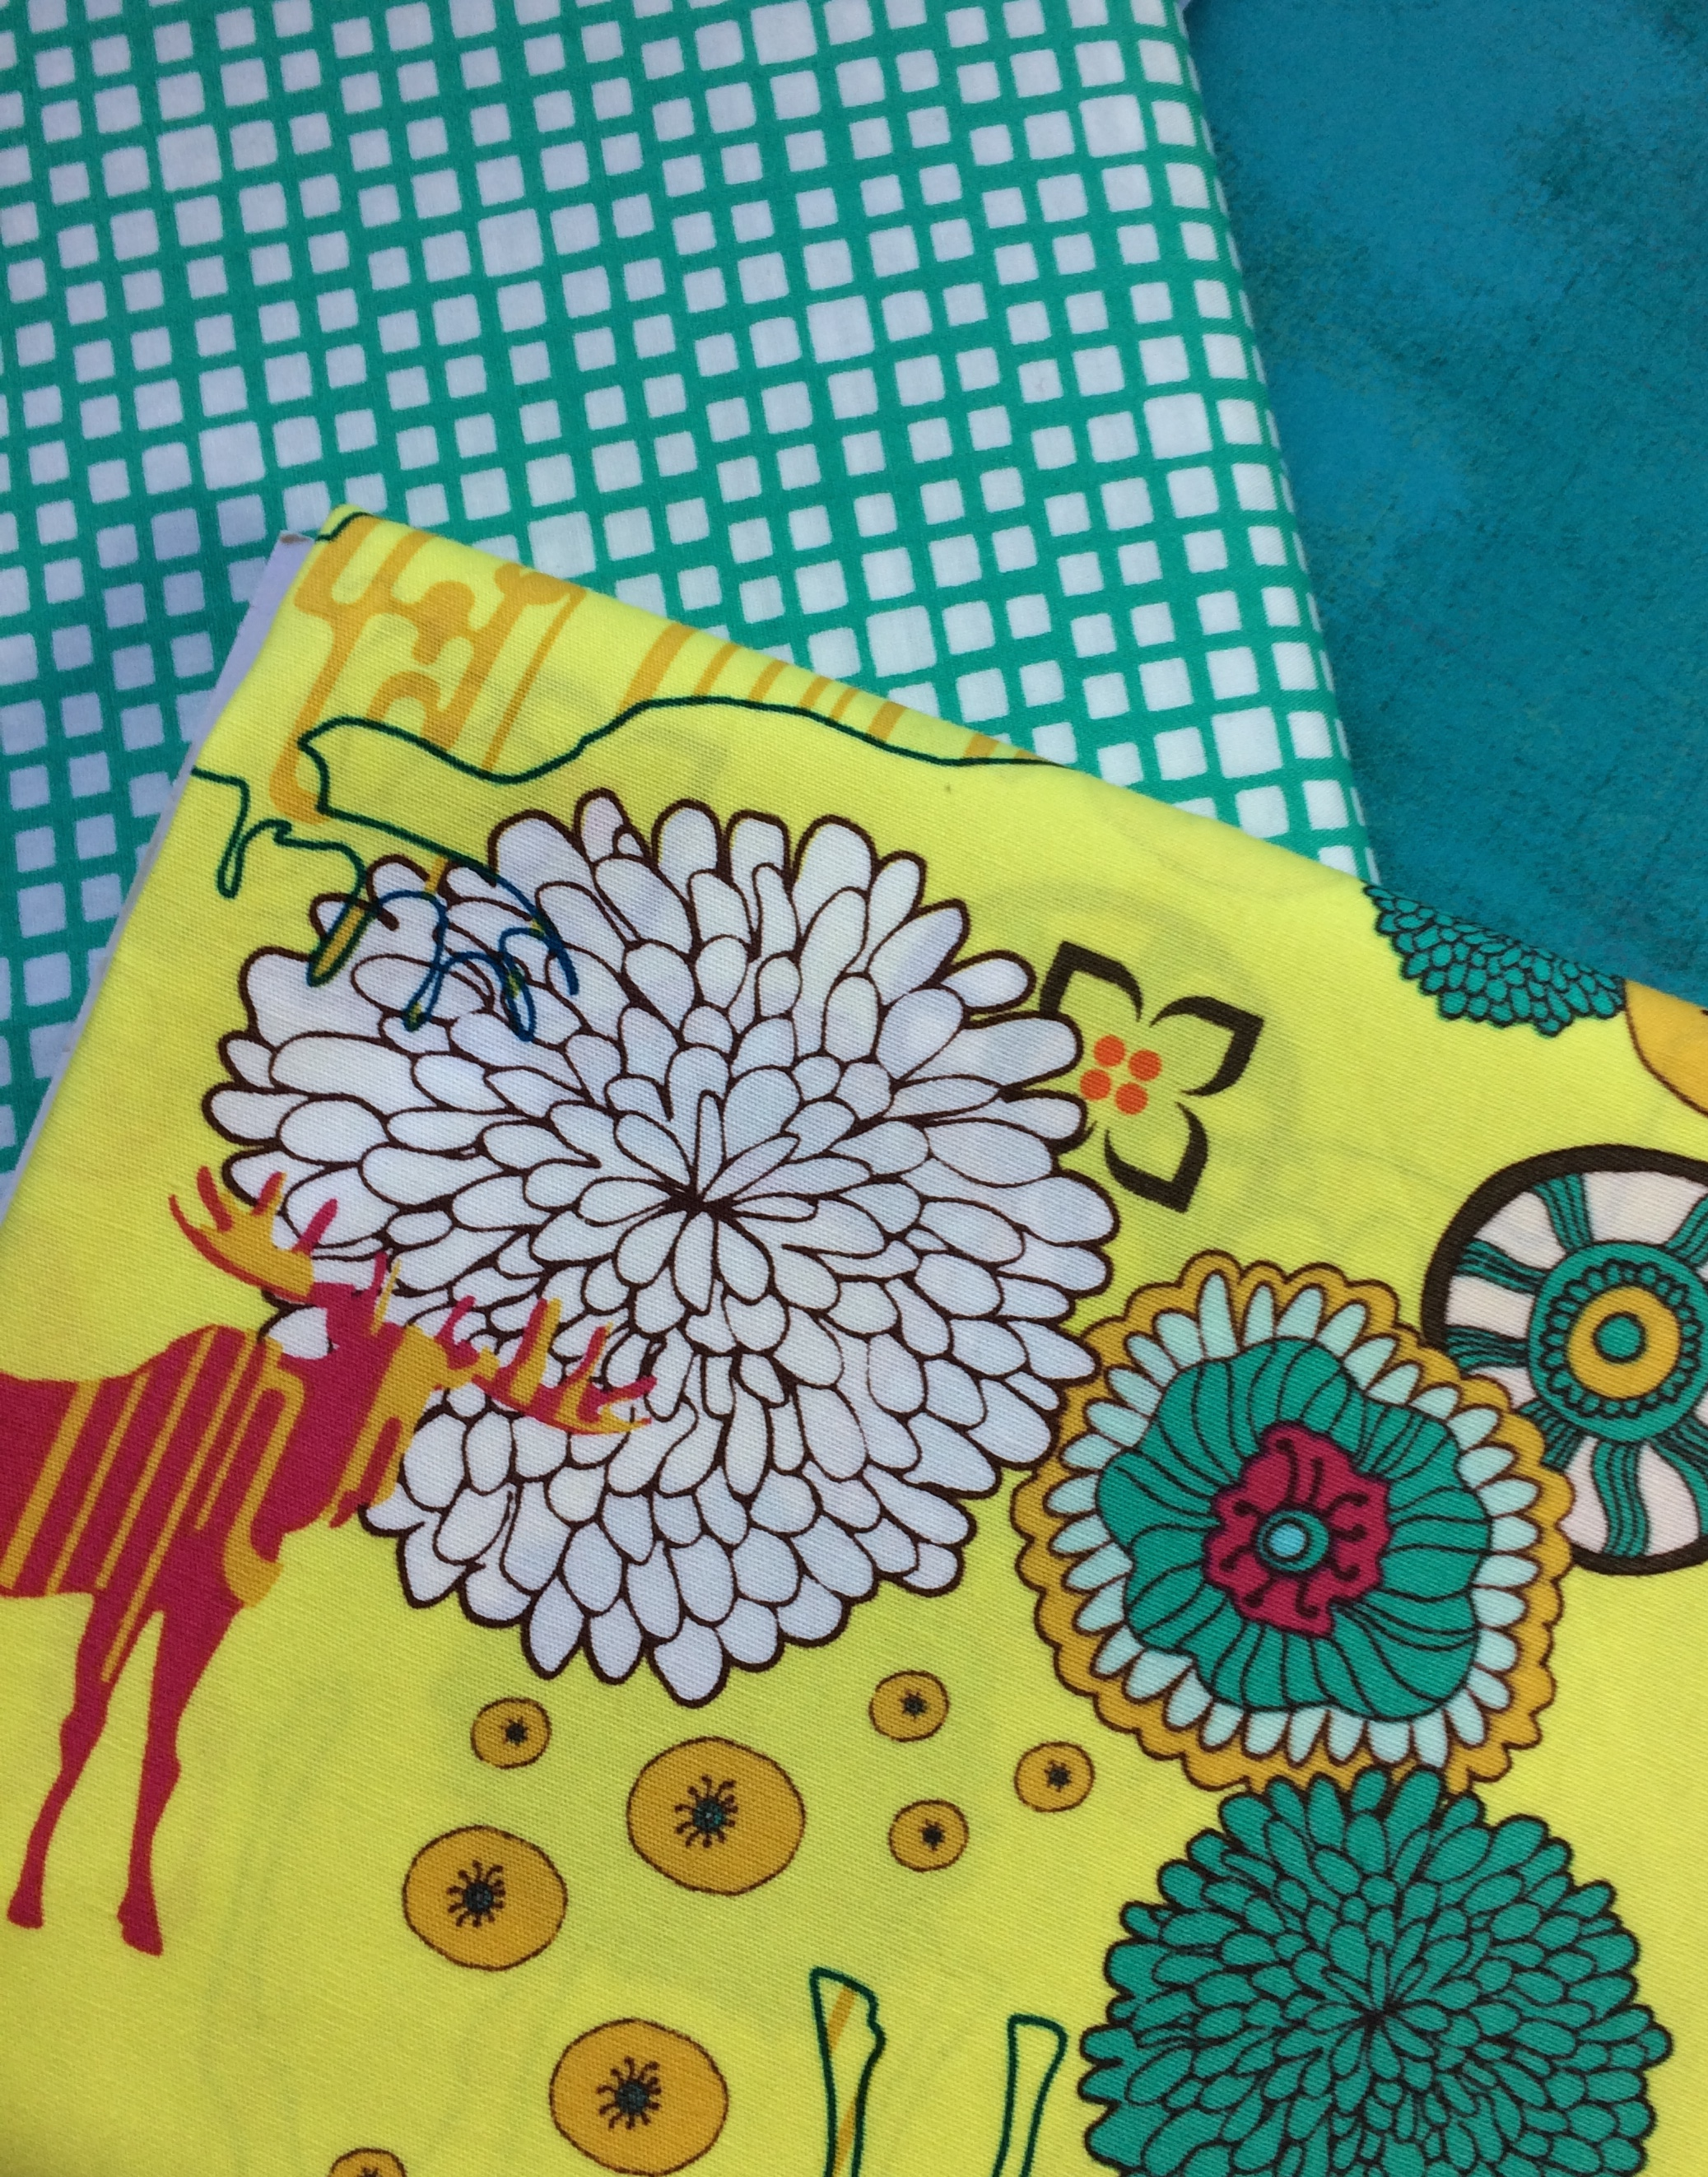 Moose and flowers, how fun! This Art Gallery Fabric is fabulous!